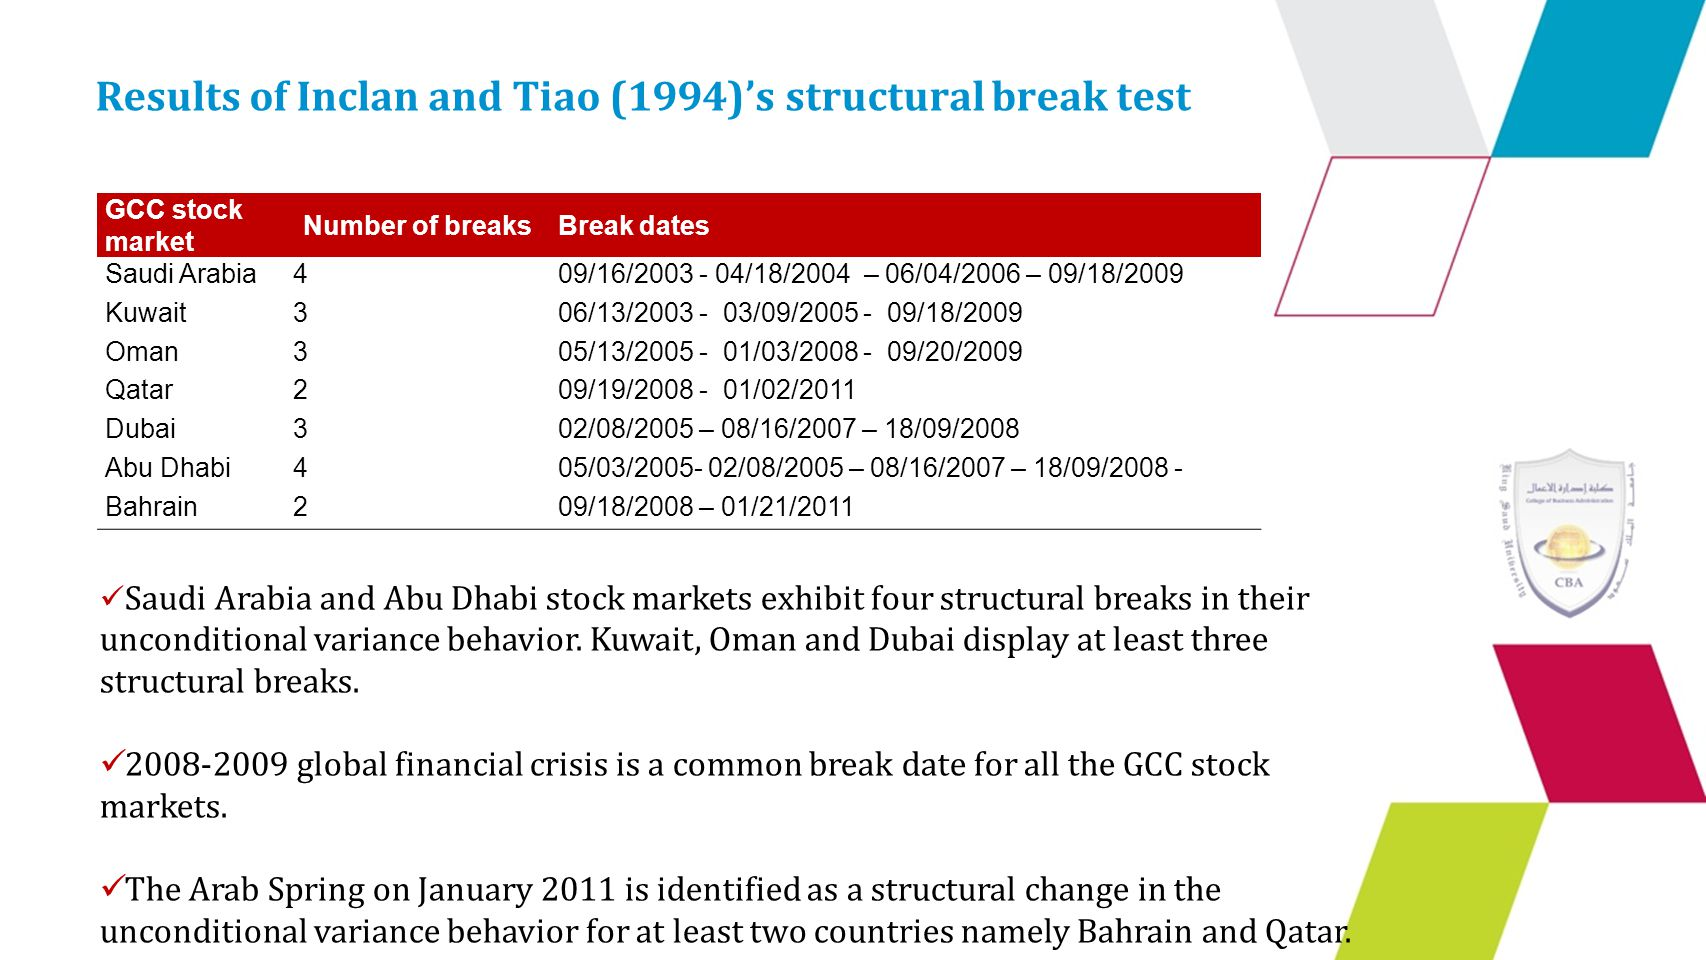 Results of Inclan and Tiao (1994)'s structural break test Saudi Arabia and Abu Dhabi stock markets exhibit four structural breaks in their unconditional variance behavior.